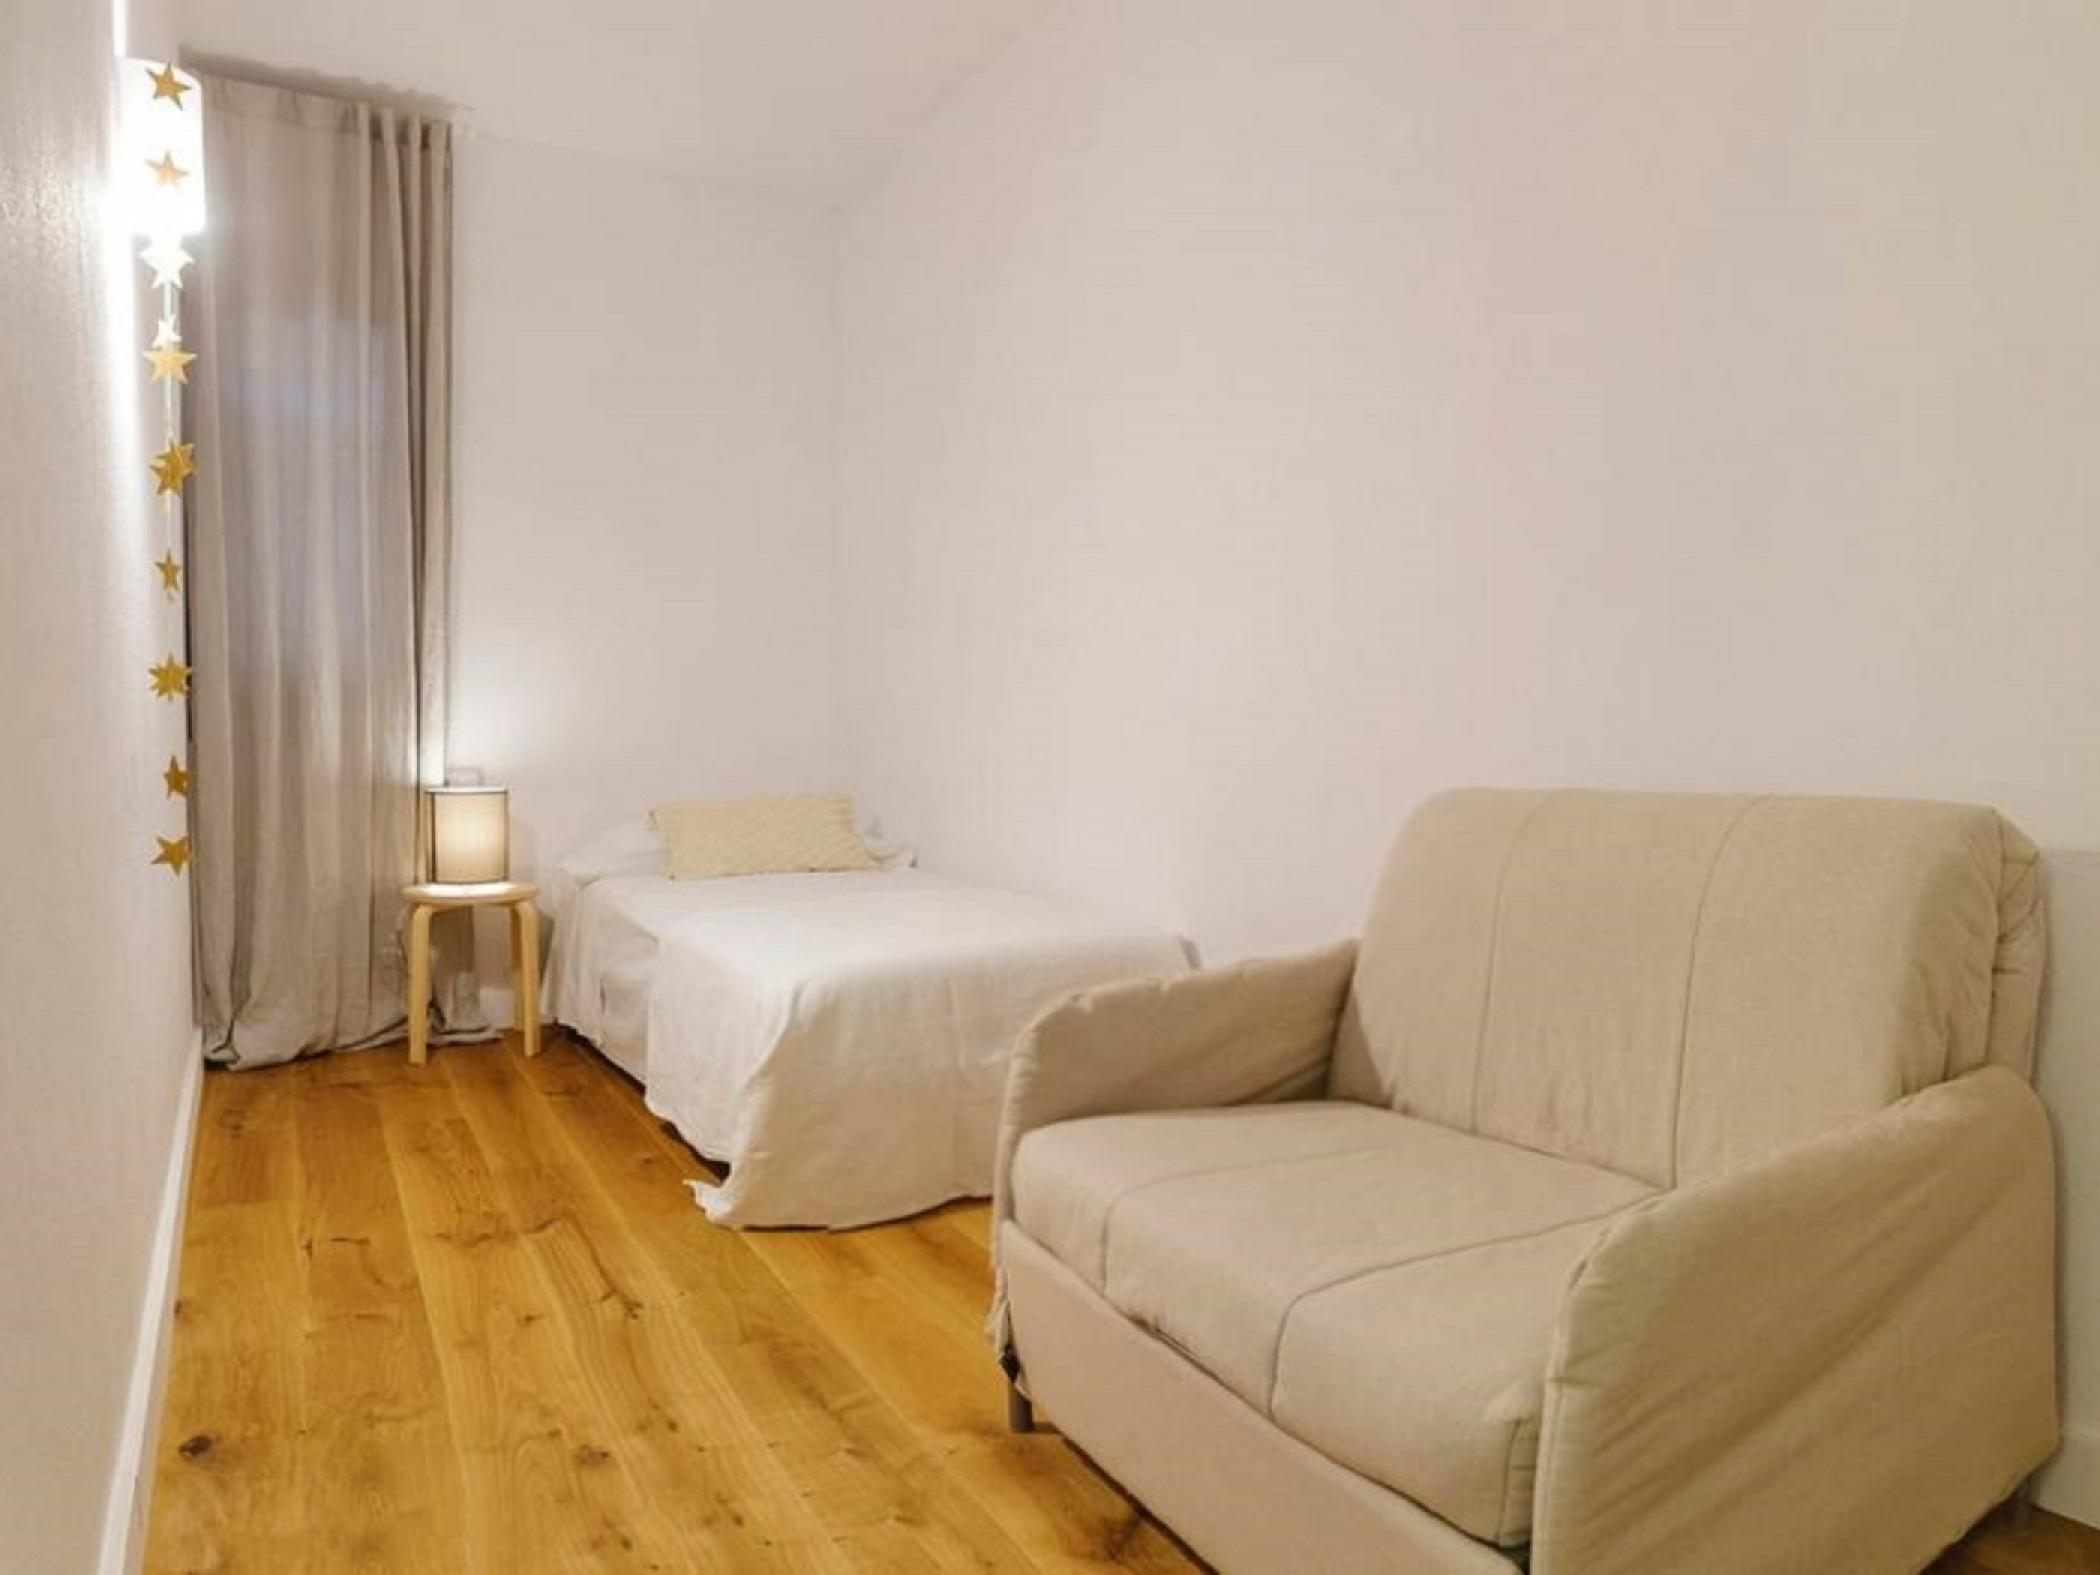 Room with single bed - Rental apartment in Sant Jordi Desvalls, Diana, Girona